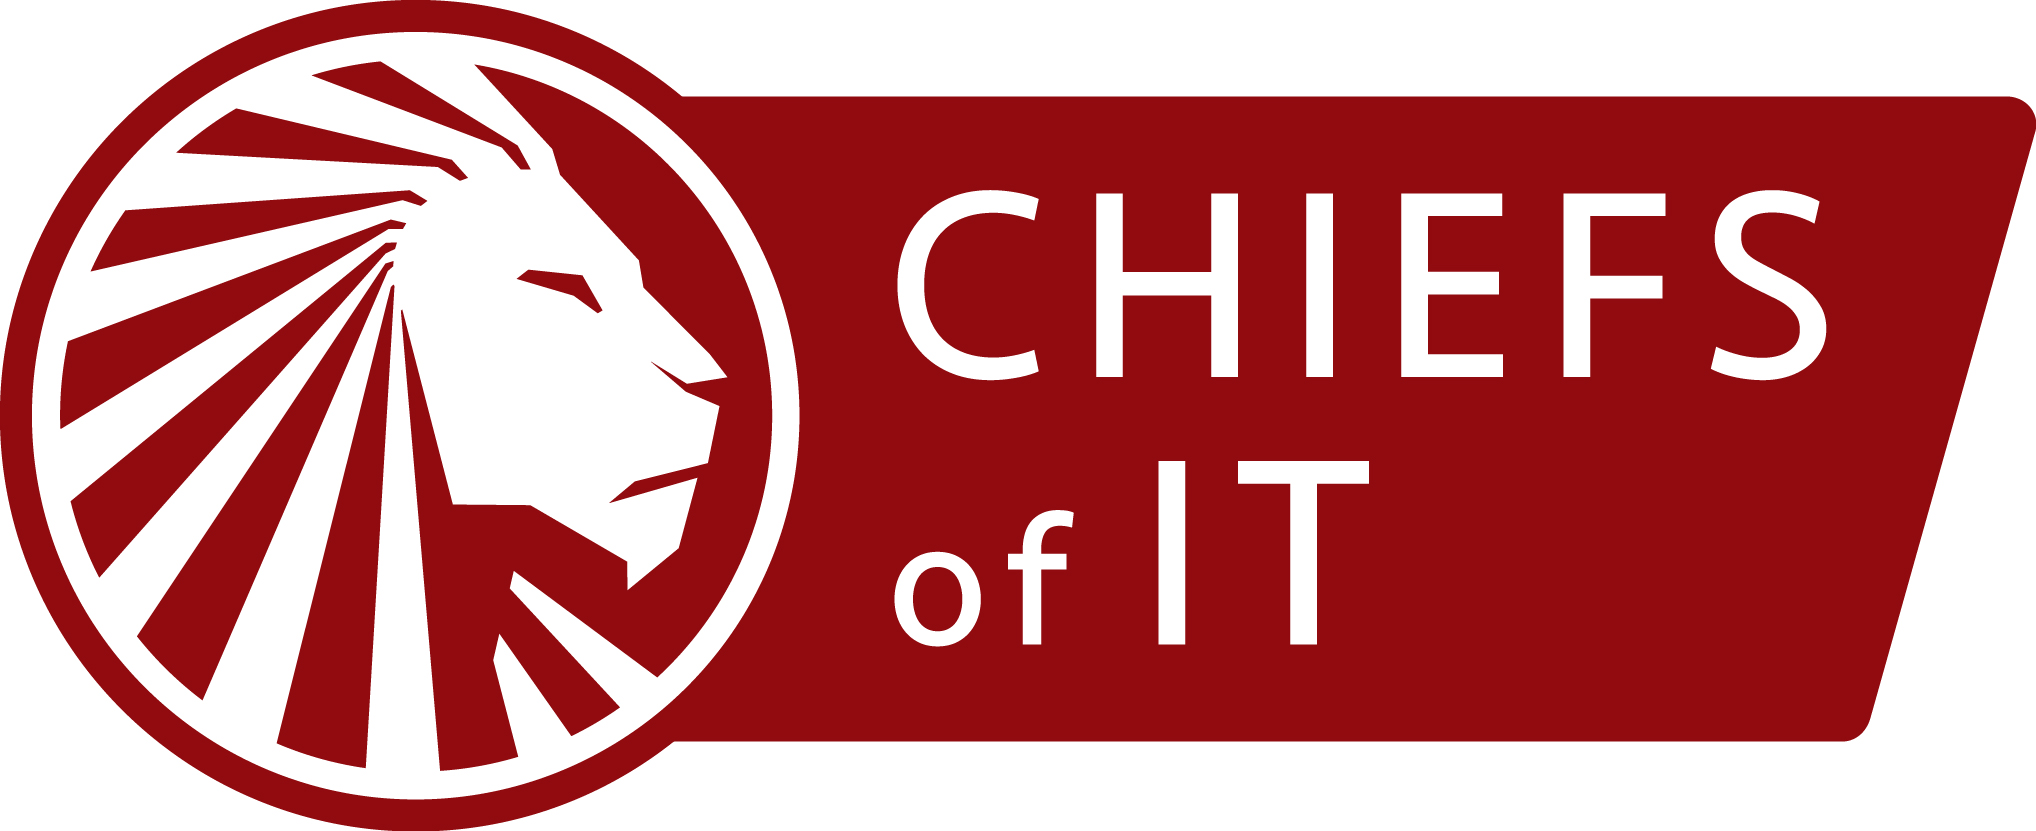 CHIEFS of IT